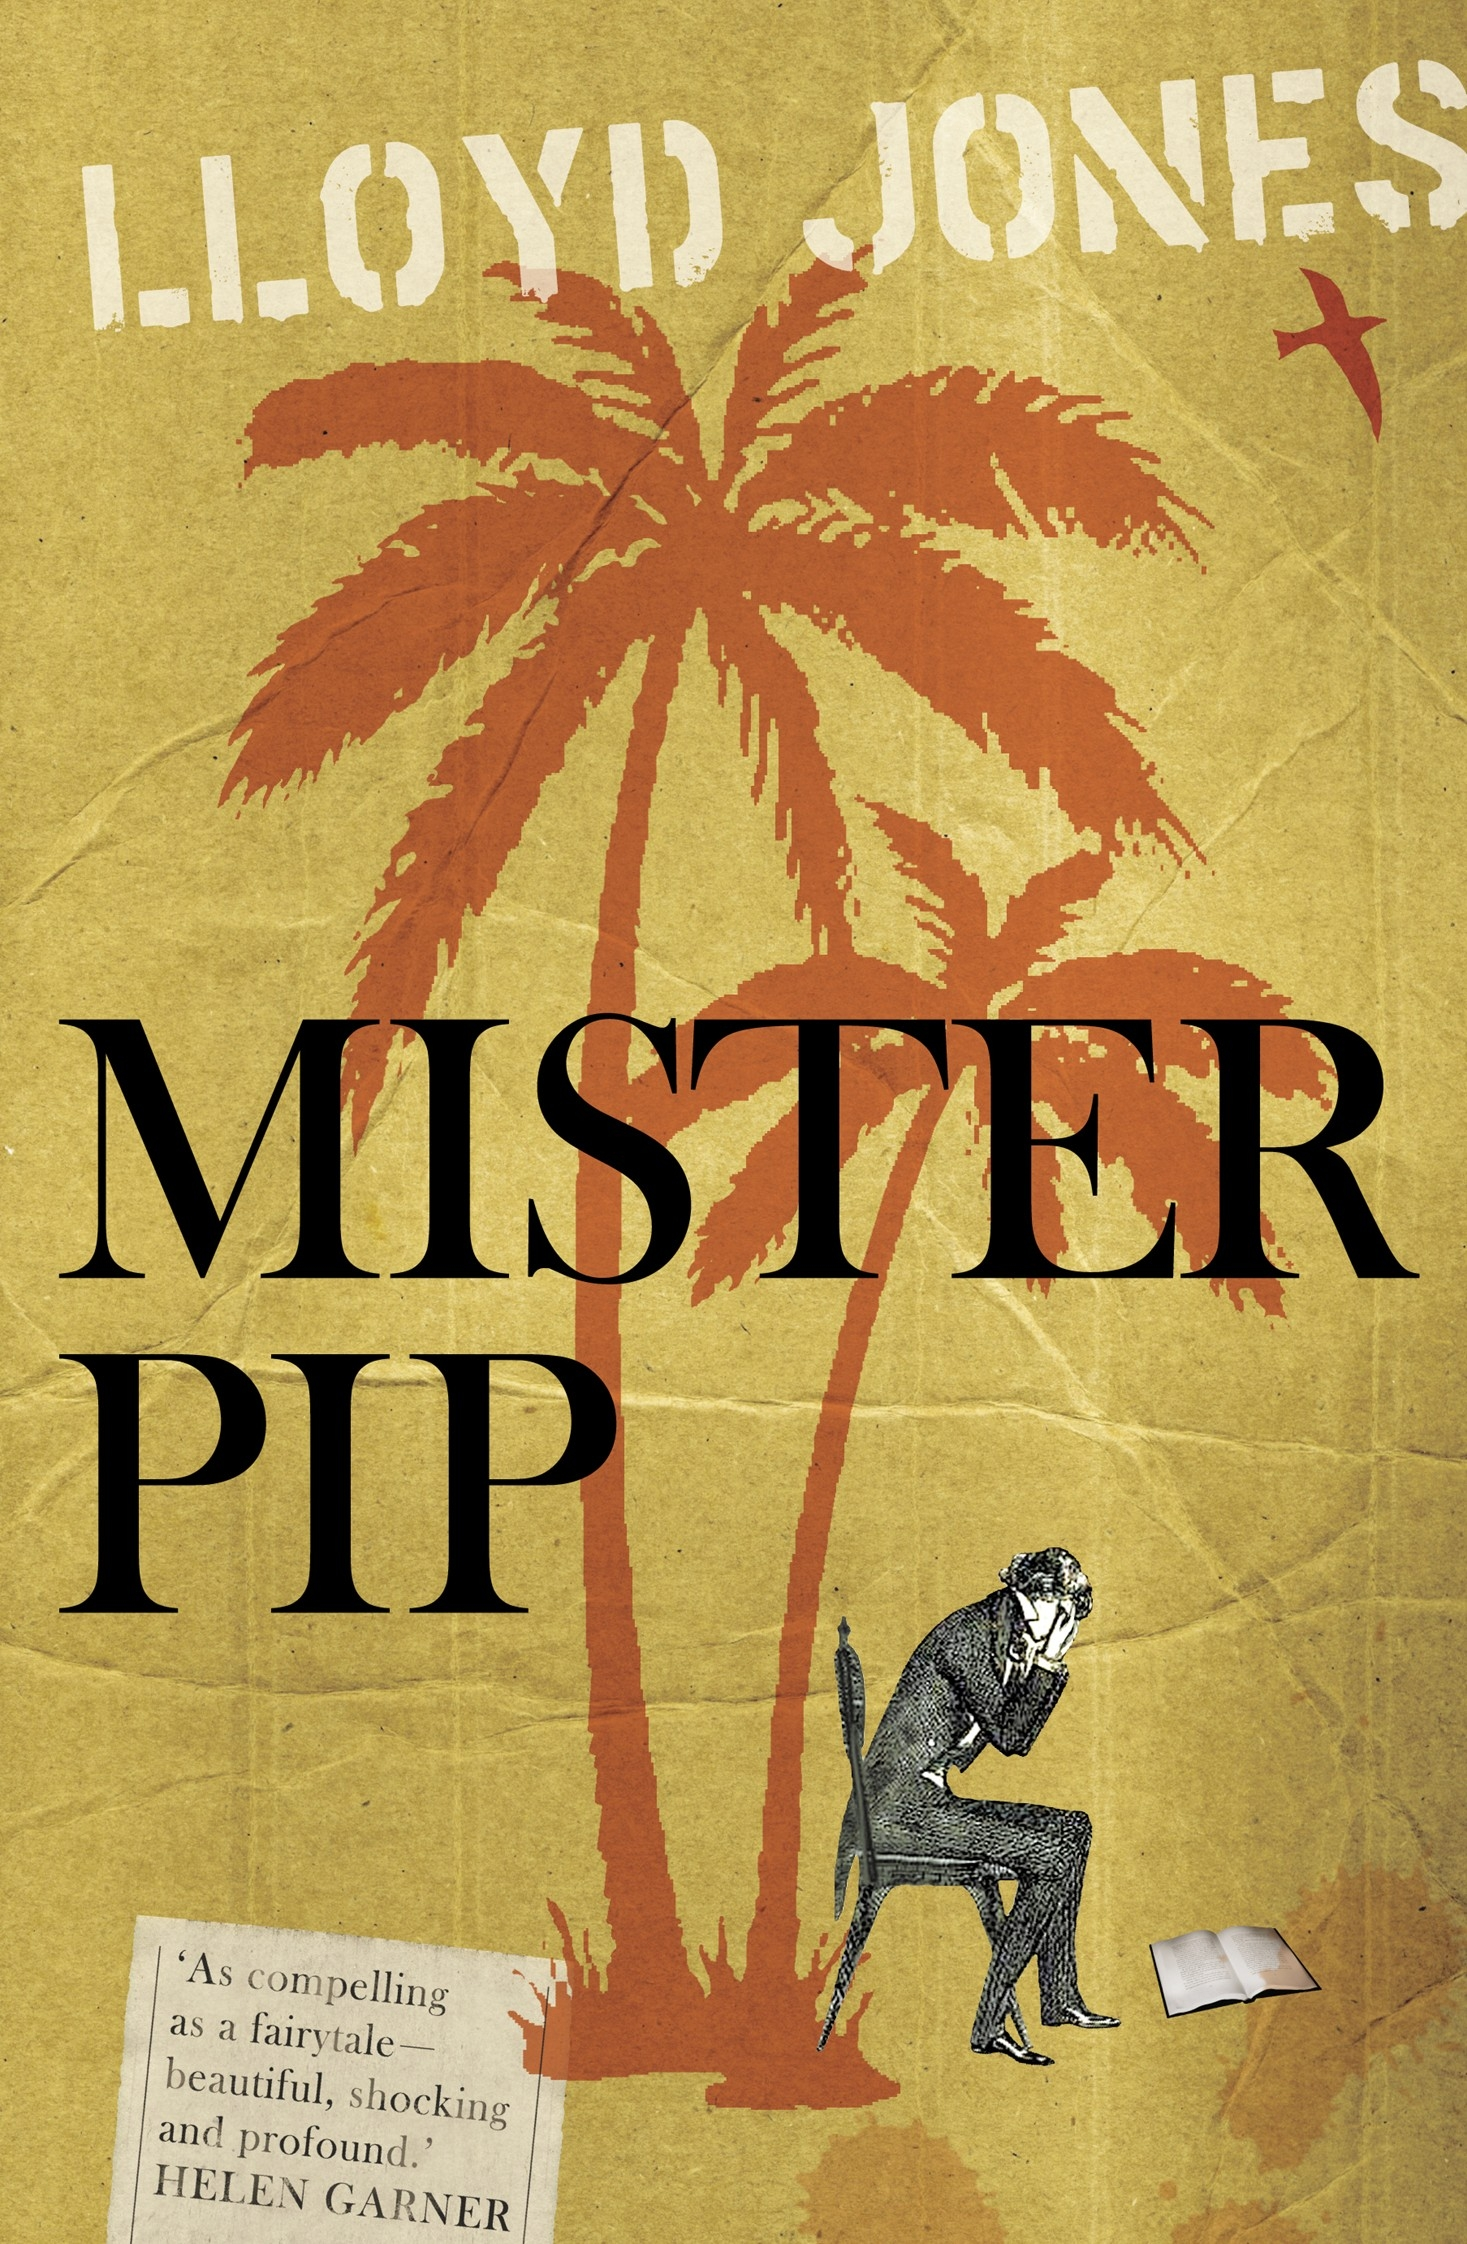 history of bougainville novel mister pip Civil war, namely lloyd jones' mister pip and chimamanda ngozi adichie's half   bestselling novel the book thief portrays the story of liesel meminger,   bougainville, a tropical island of papua new guinea that was struck by a civil war  in.